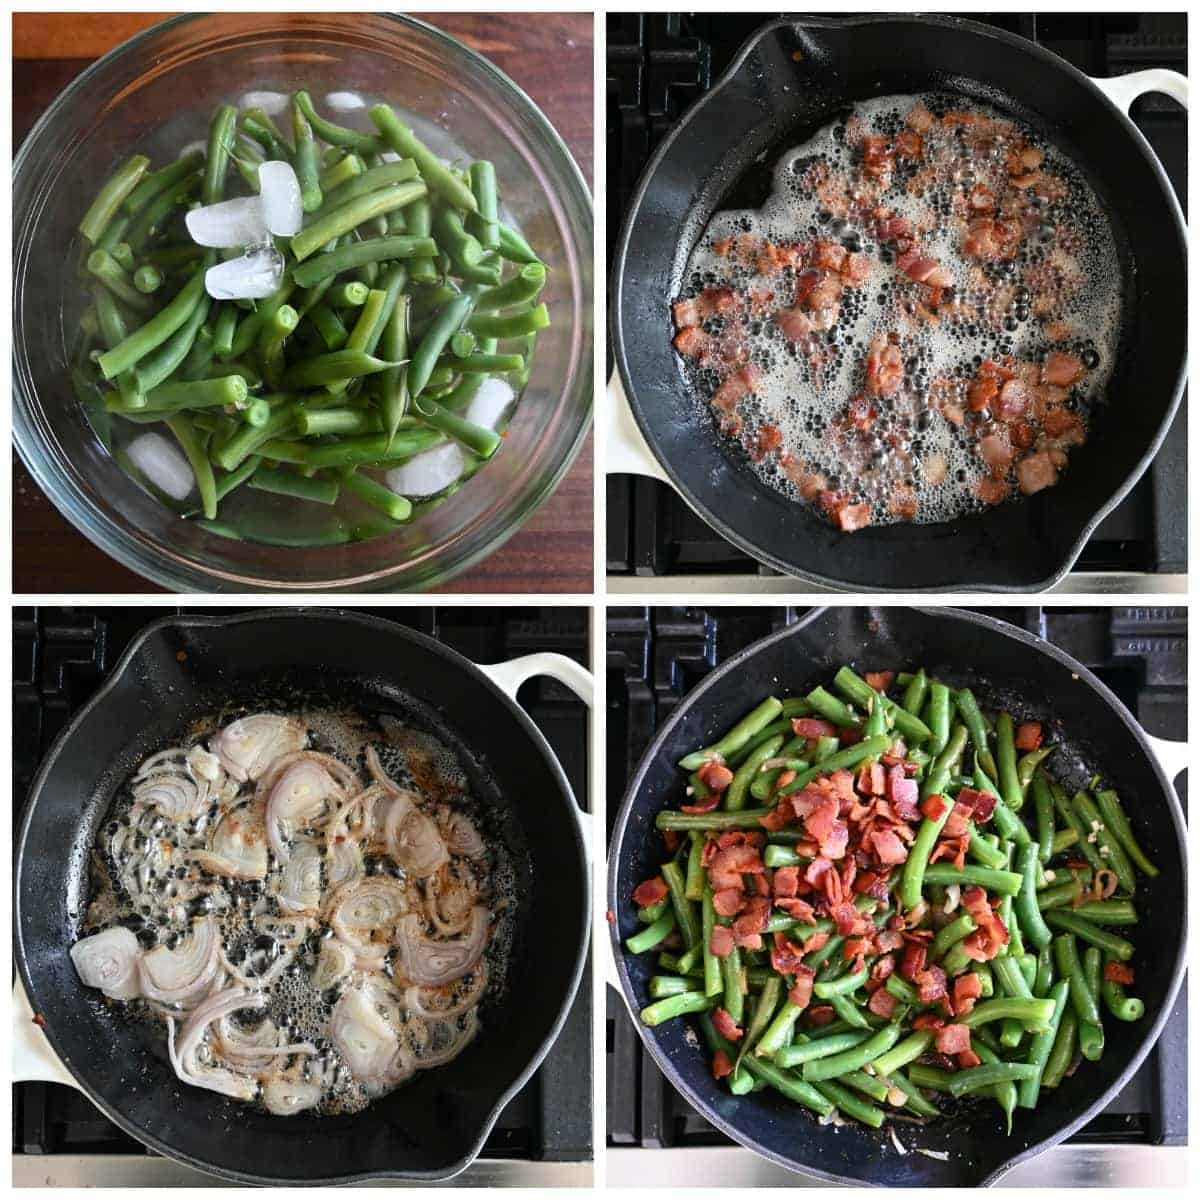 Four process photos. First one, fresh cooked green beans in a bowl of ice water. Second one, bacon piences cooked in a skillet. Third one, sliced shallots cooking in bacon grease. Fourth one, green beans, bacon and shallots all tossed together in the skillet.